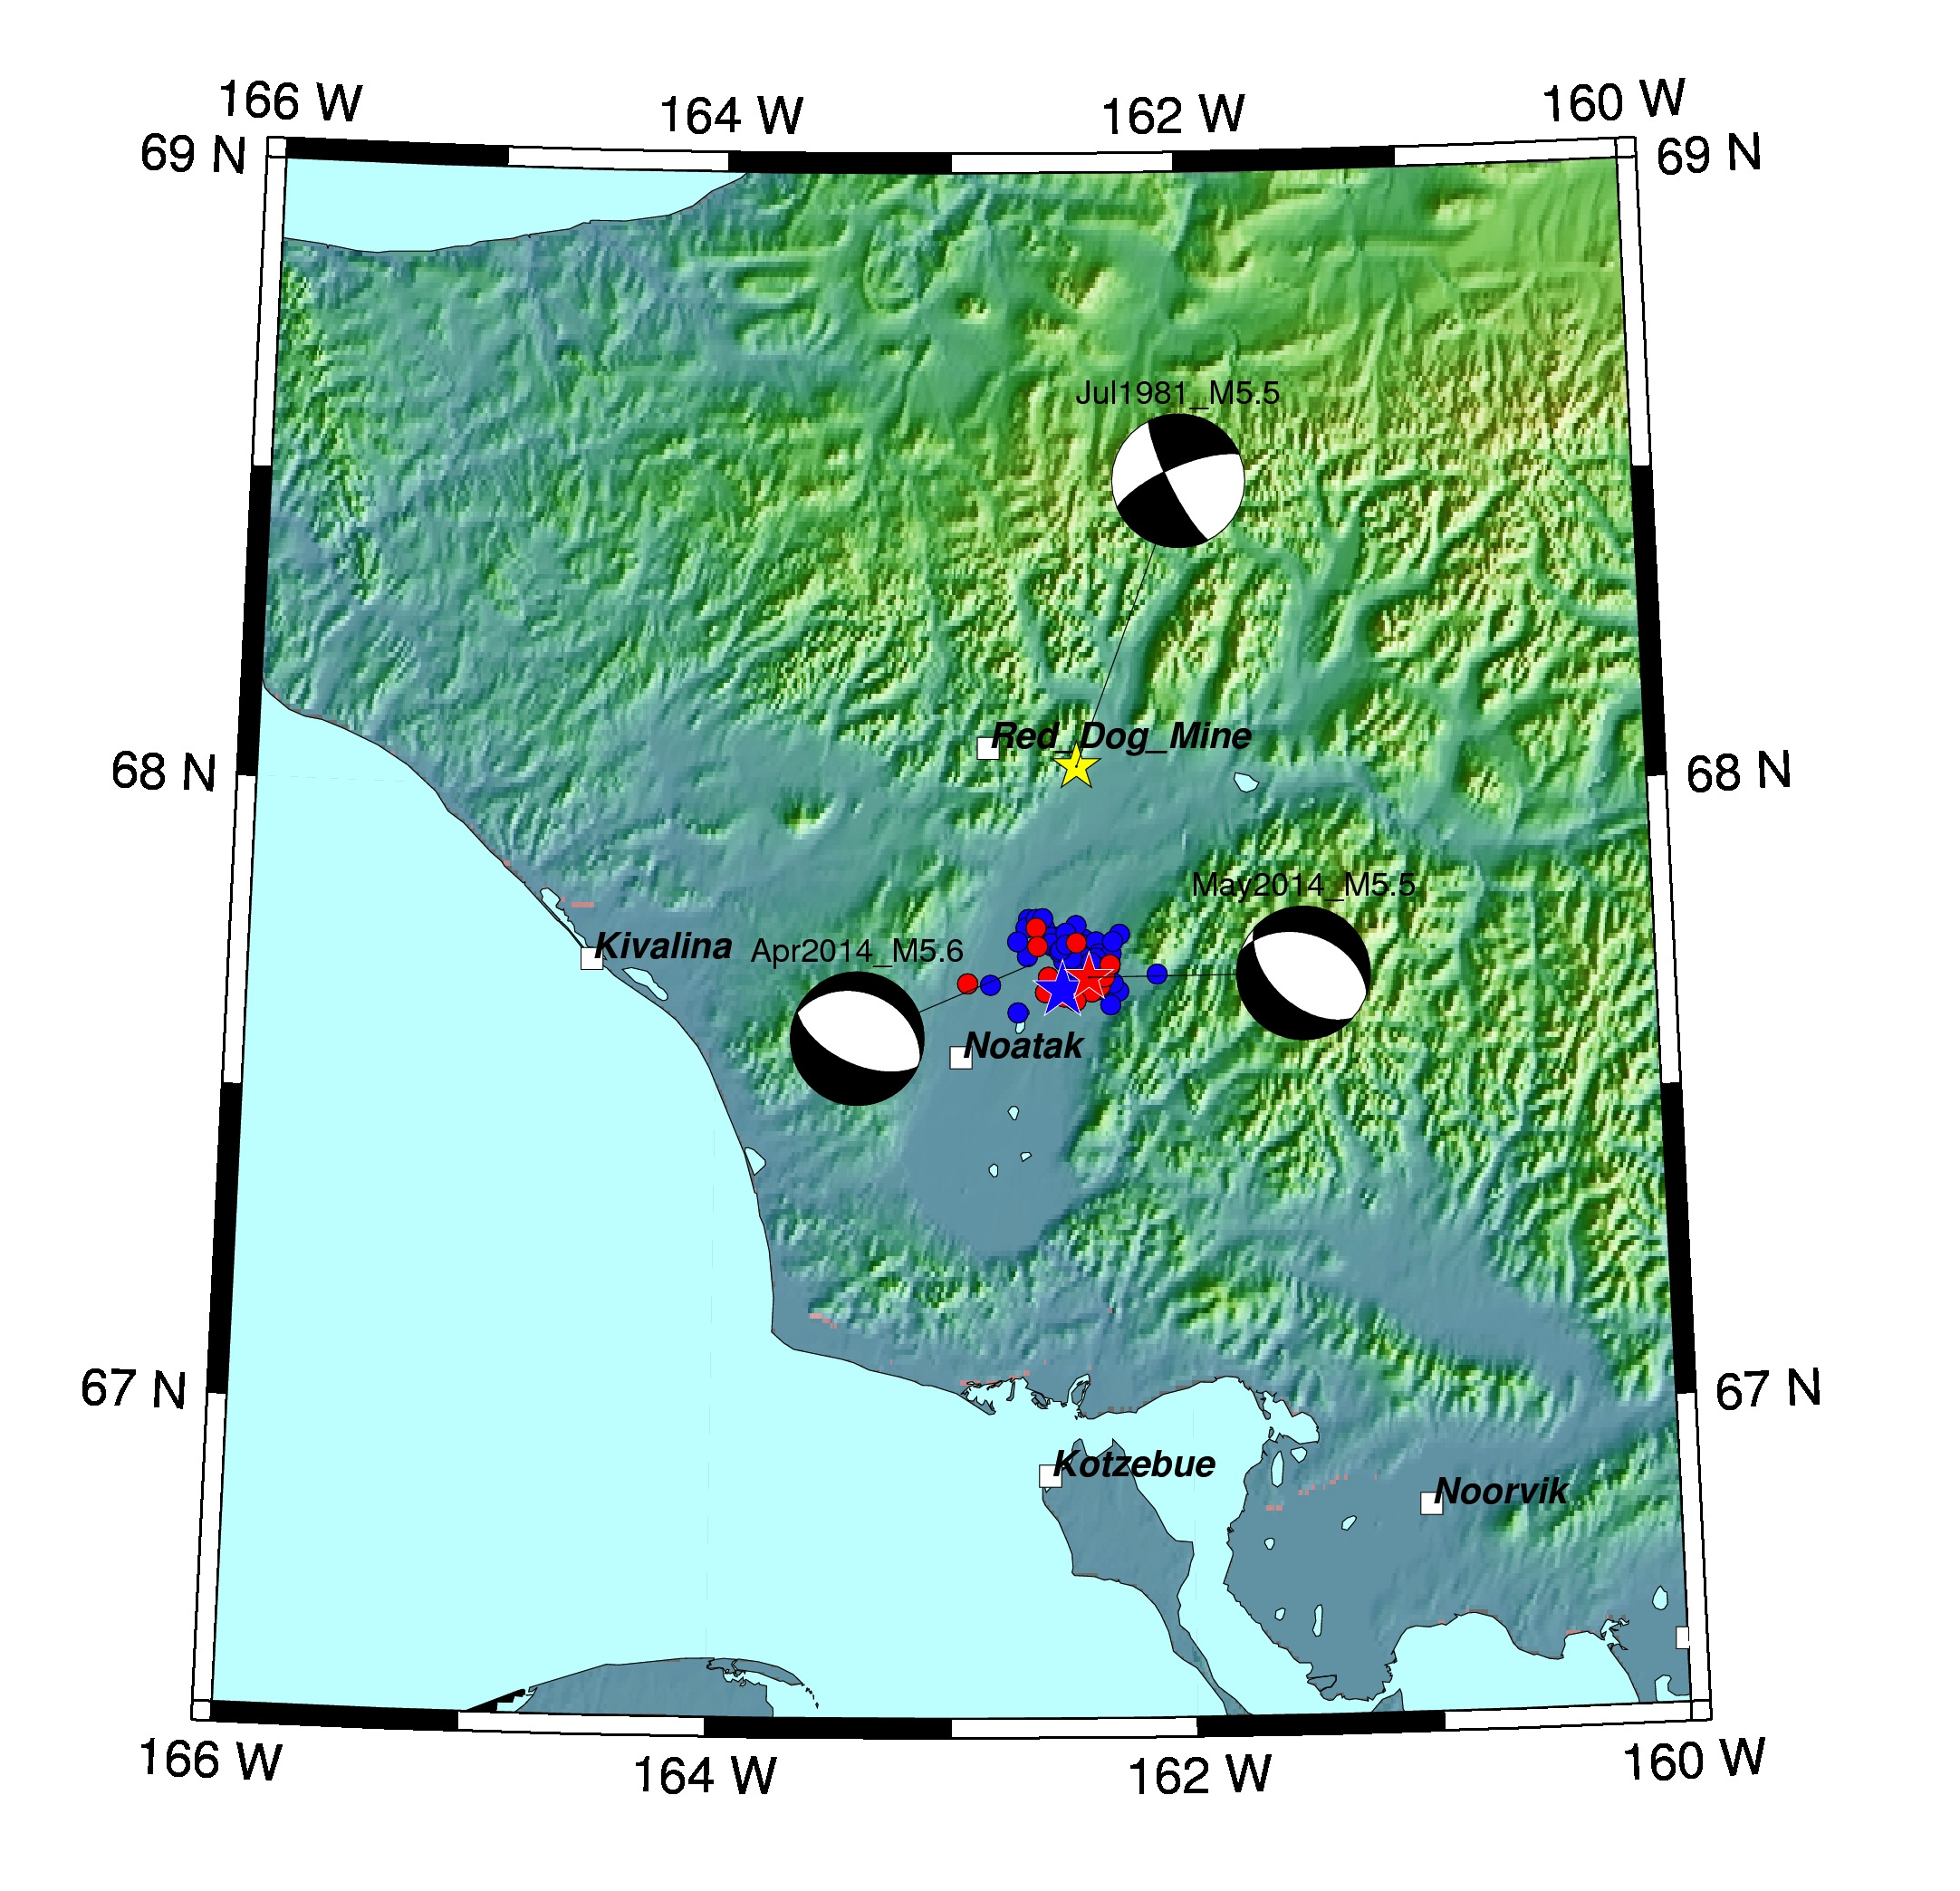 (Map courtesy of the Alaska Earthquake Information Center)